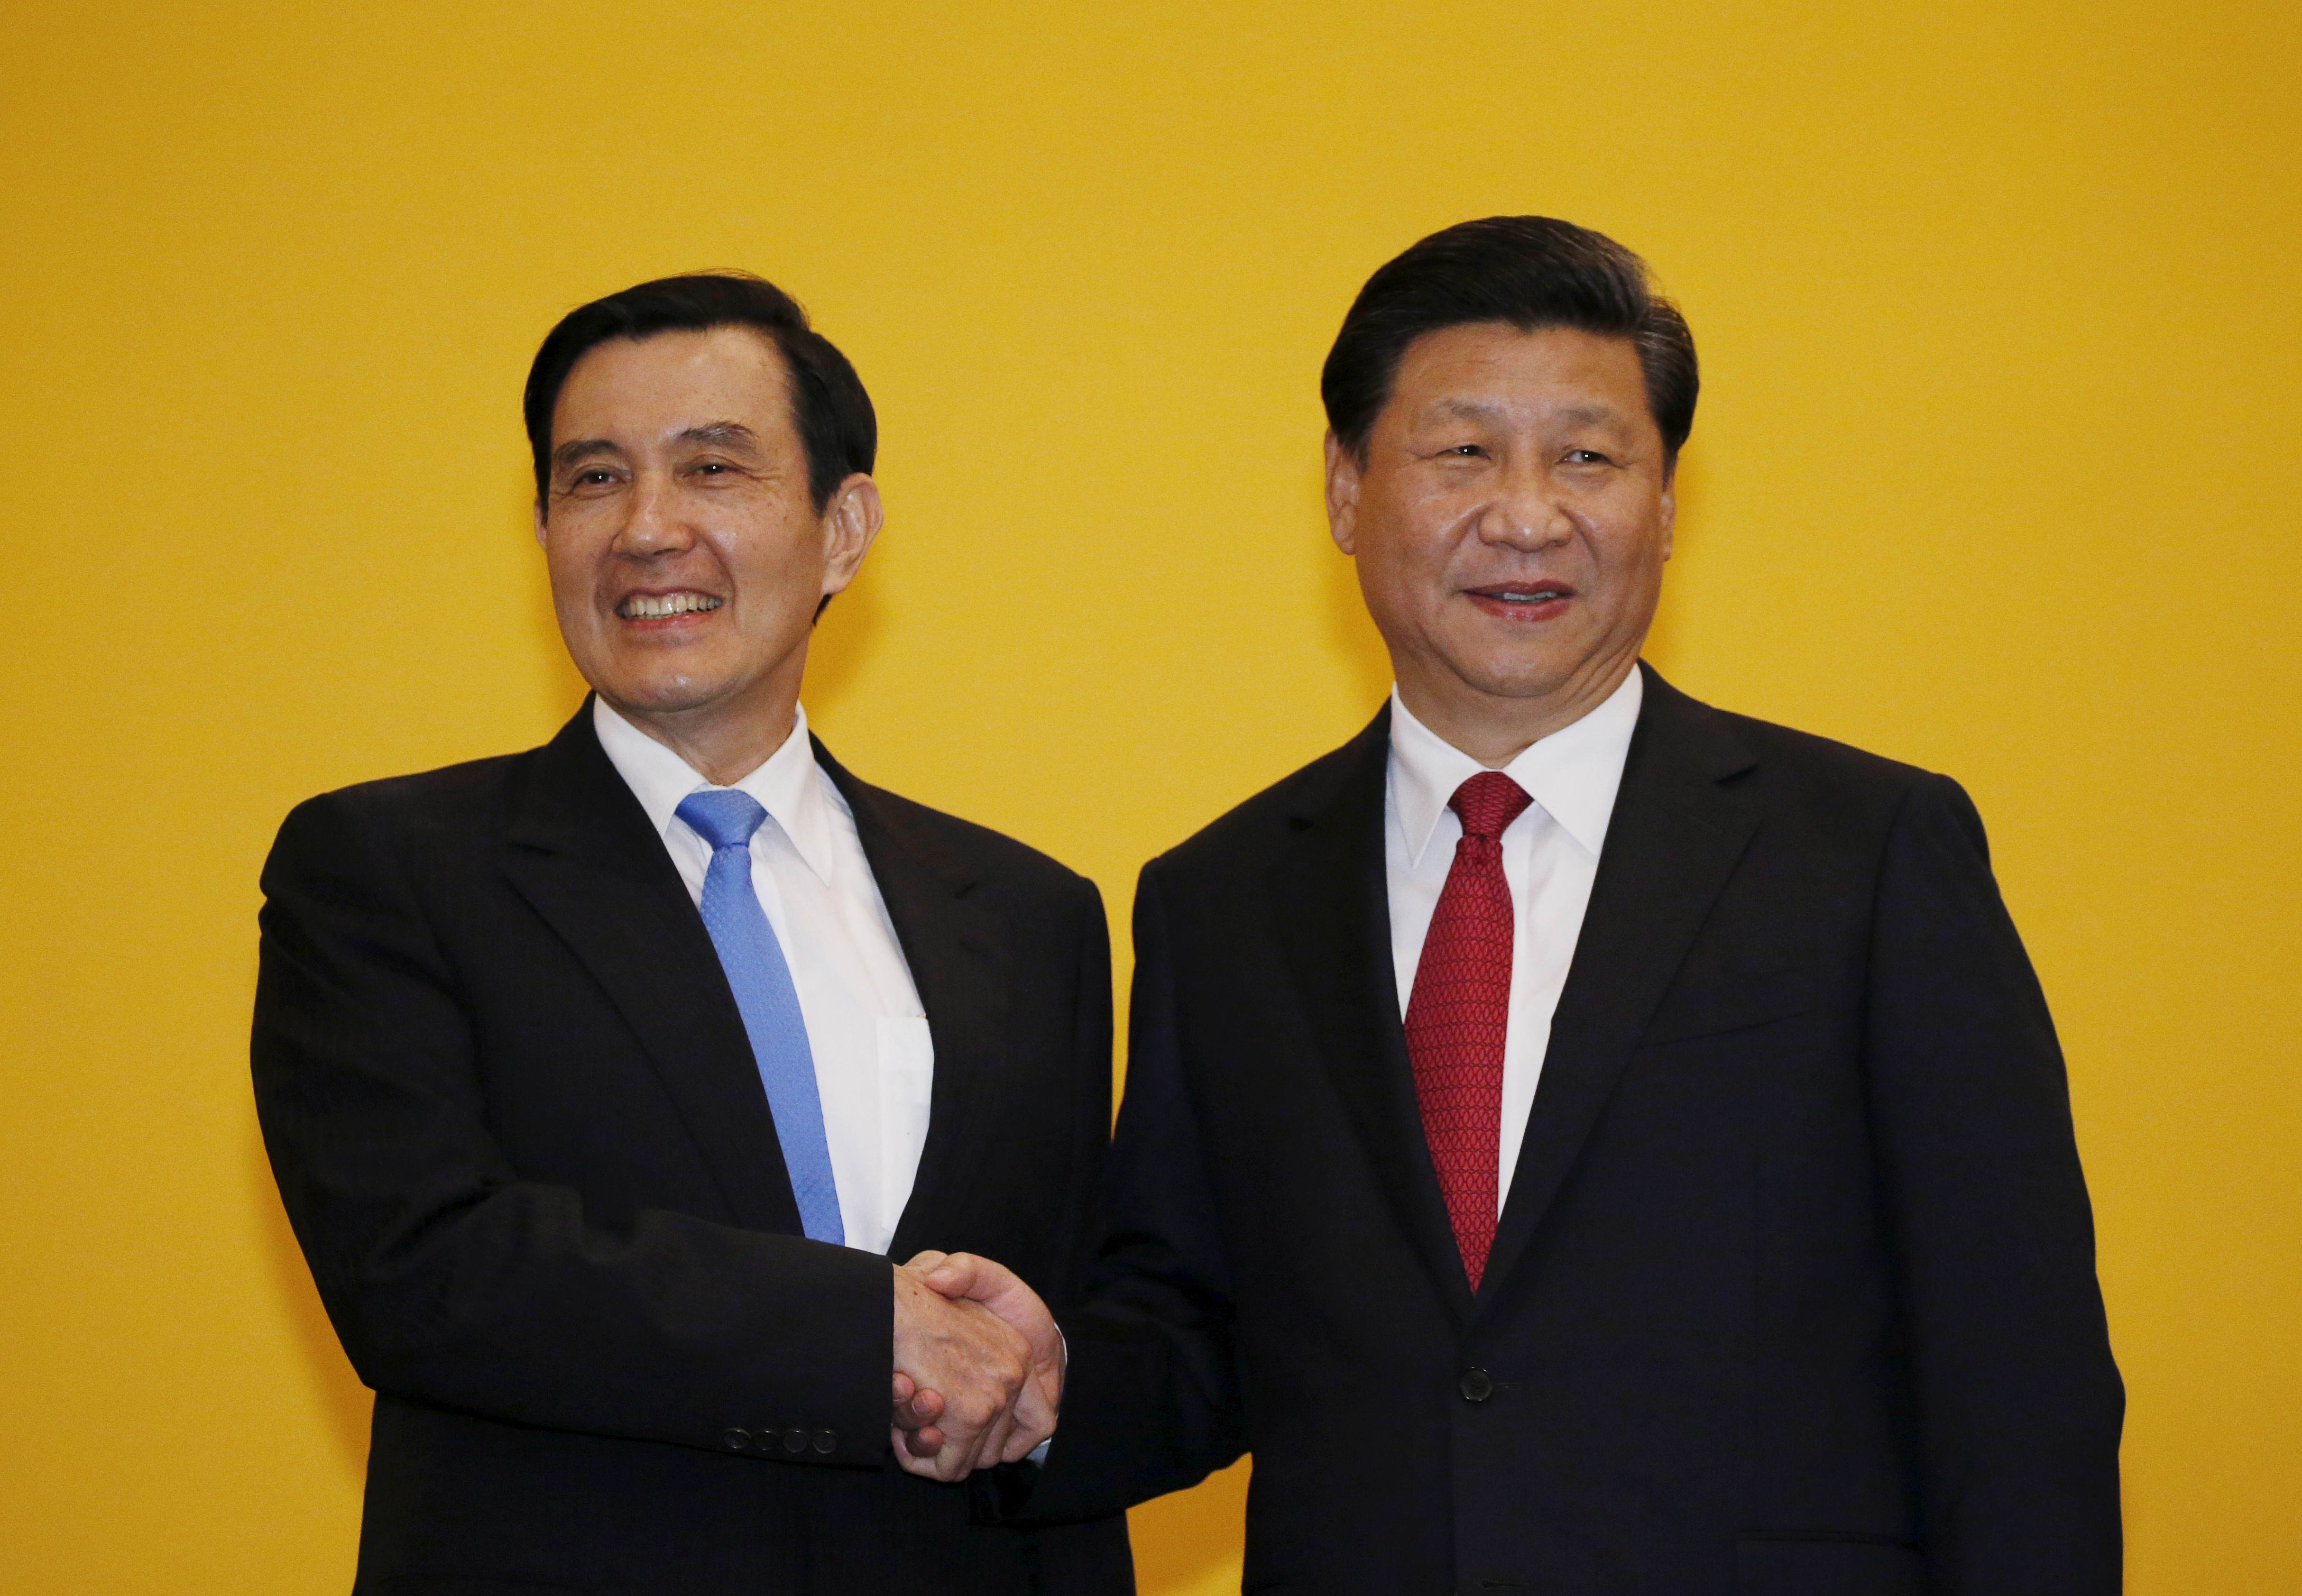 Chinese President Xi Jinping shakes hands with Taiwan's President Ma Ying-jeou during a summit in Singapore, Nov. 7, 2015. Leaders of political rivals China and Taiwan met on Saturday for the first time in more than 60 years.